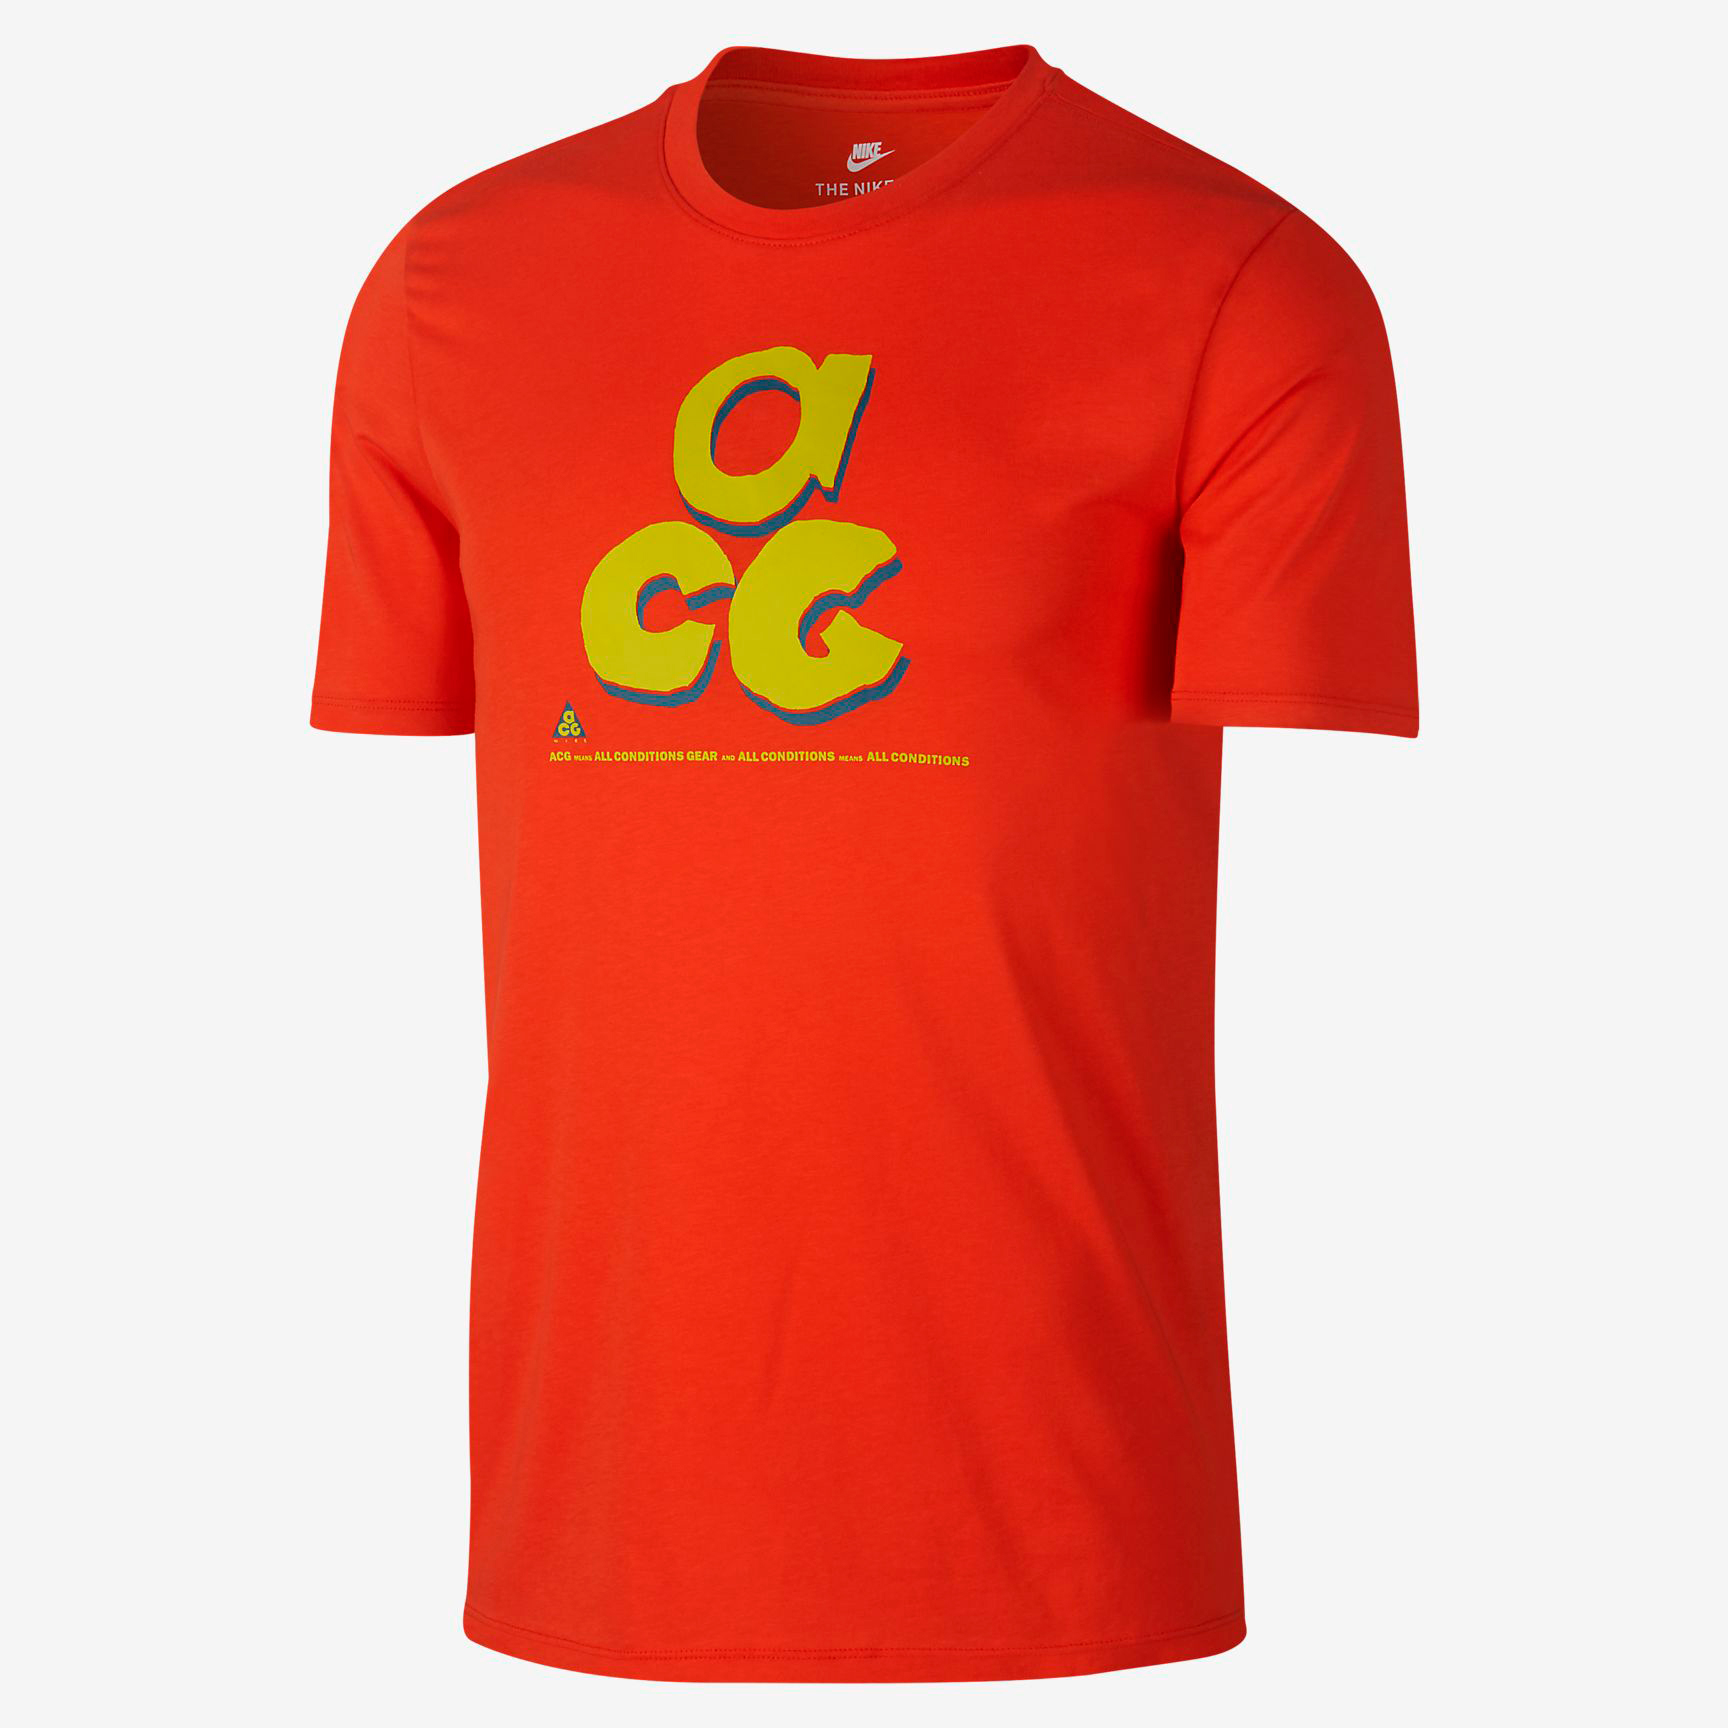 nike-acg-shirt-black-orange-yellow